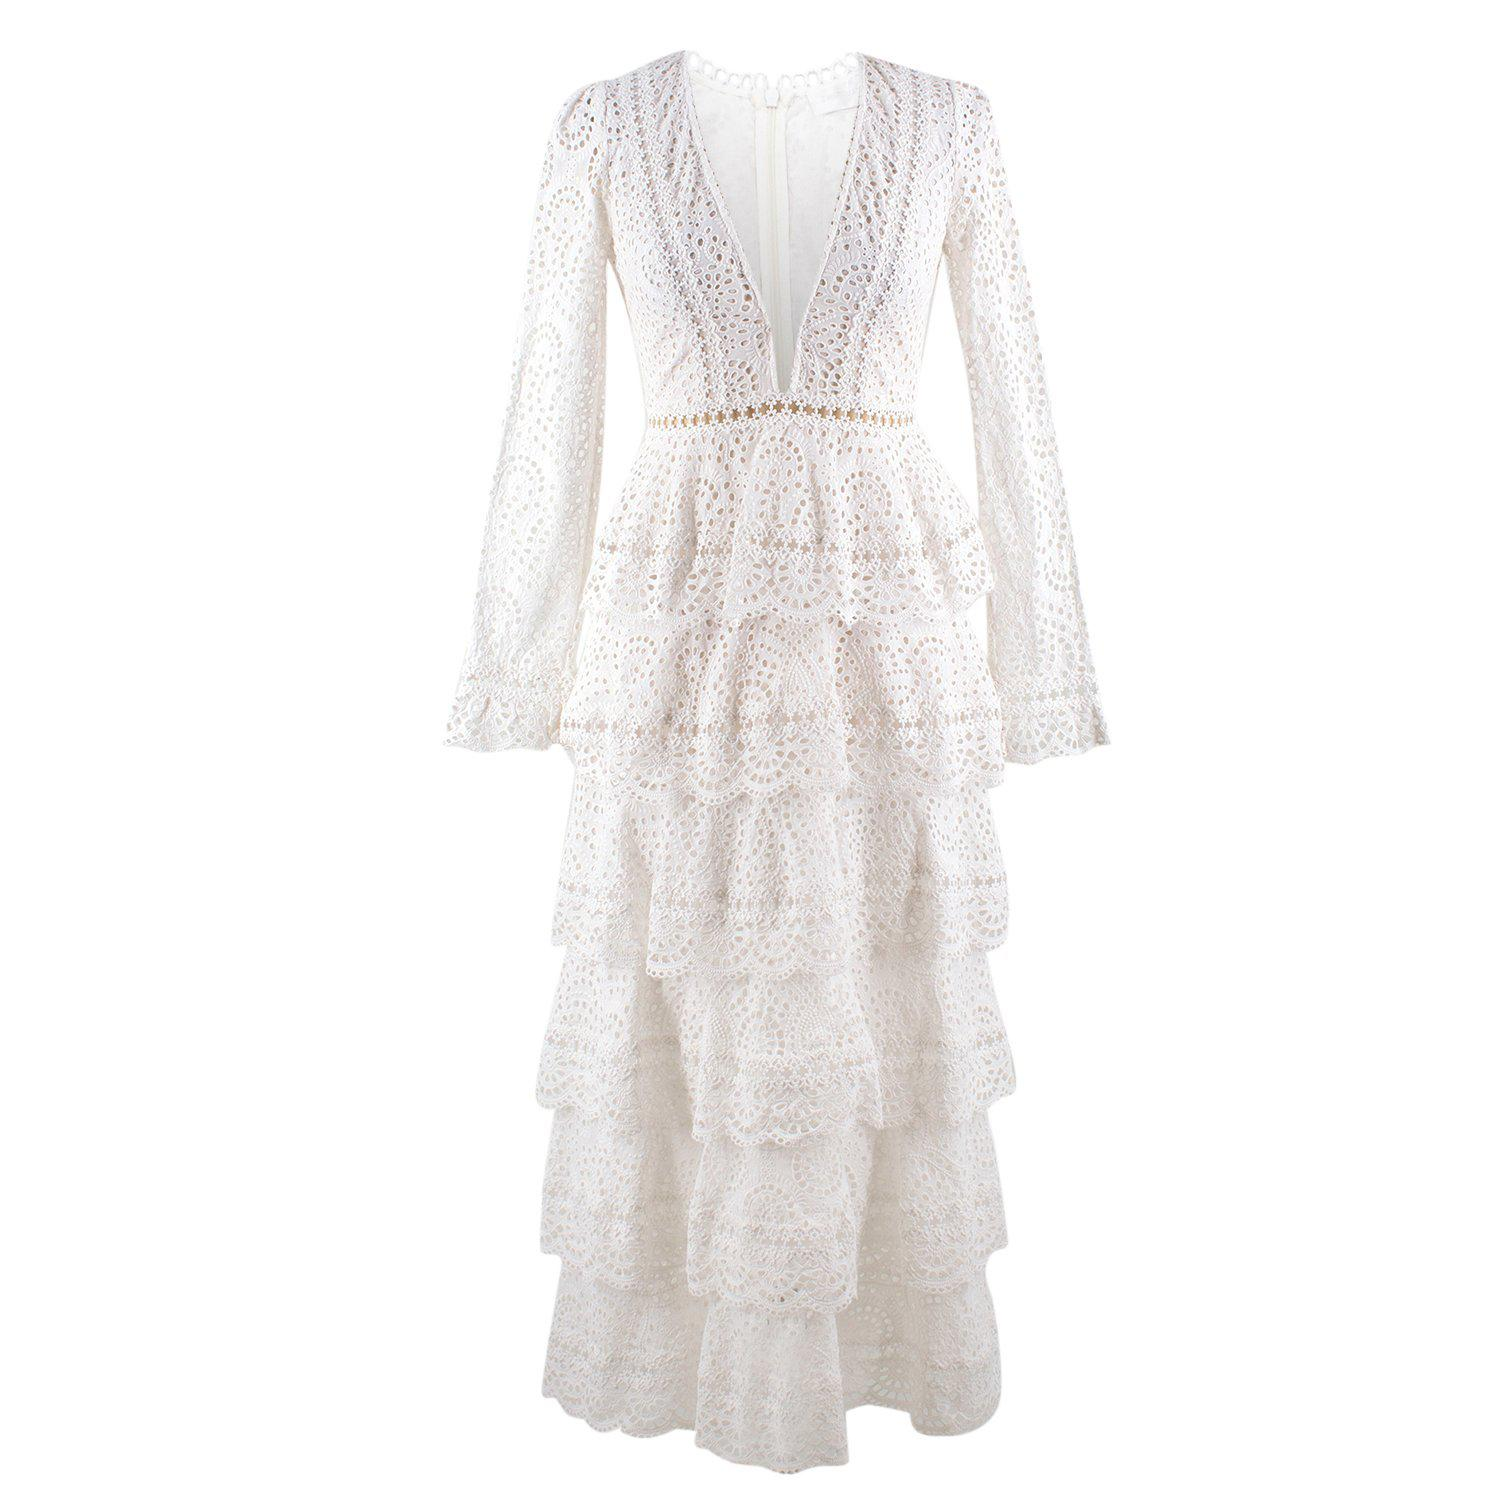 8d2c096c901 Zimmermann Bayou Cotton Broderie Anglaise Midi Dress US size 0 For Sale at  1stdibs